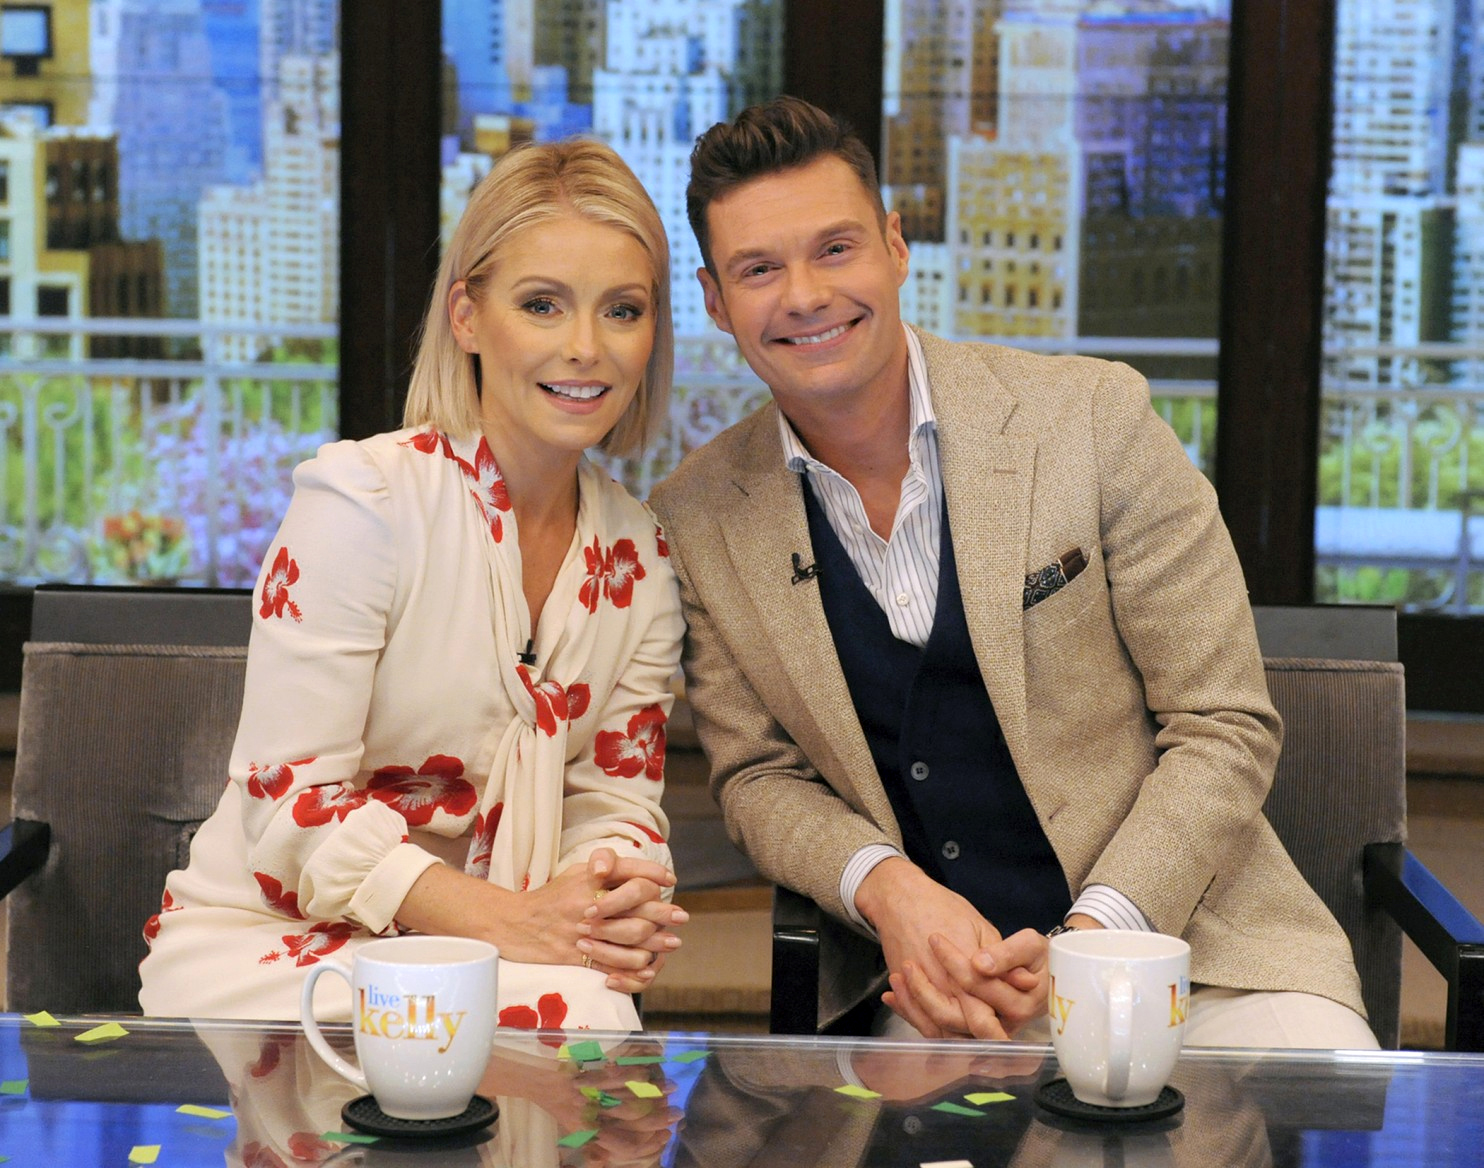 Kelly Ripa and Ryan Seacrest are bringing their morning show to Niagara Falls, Ont. (Pawel Kaminski, Disney-ABC Home Entertainment and TV Distribution)